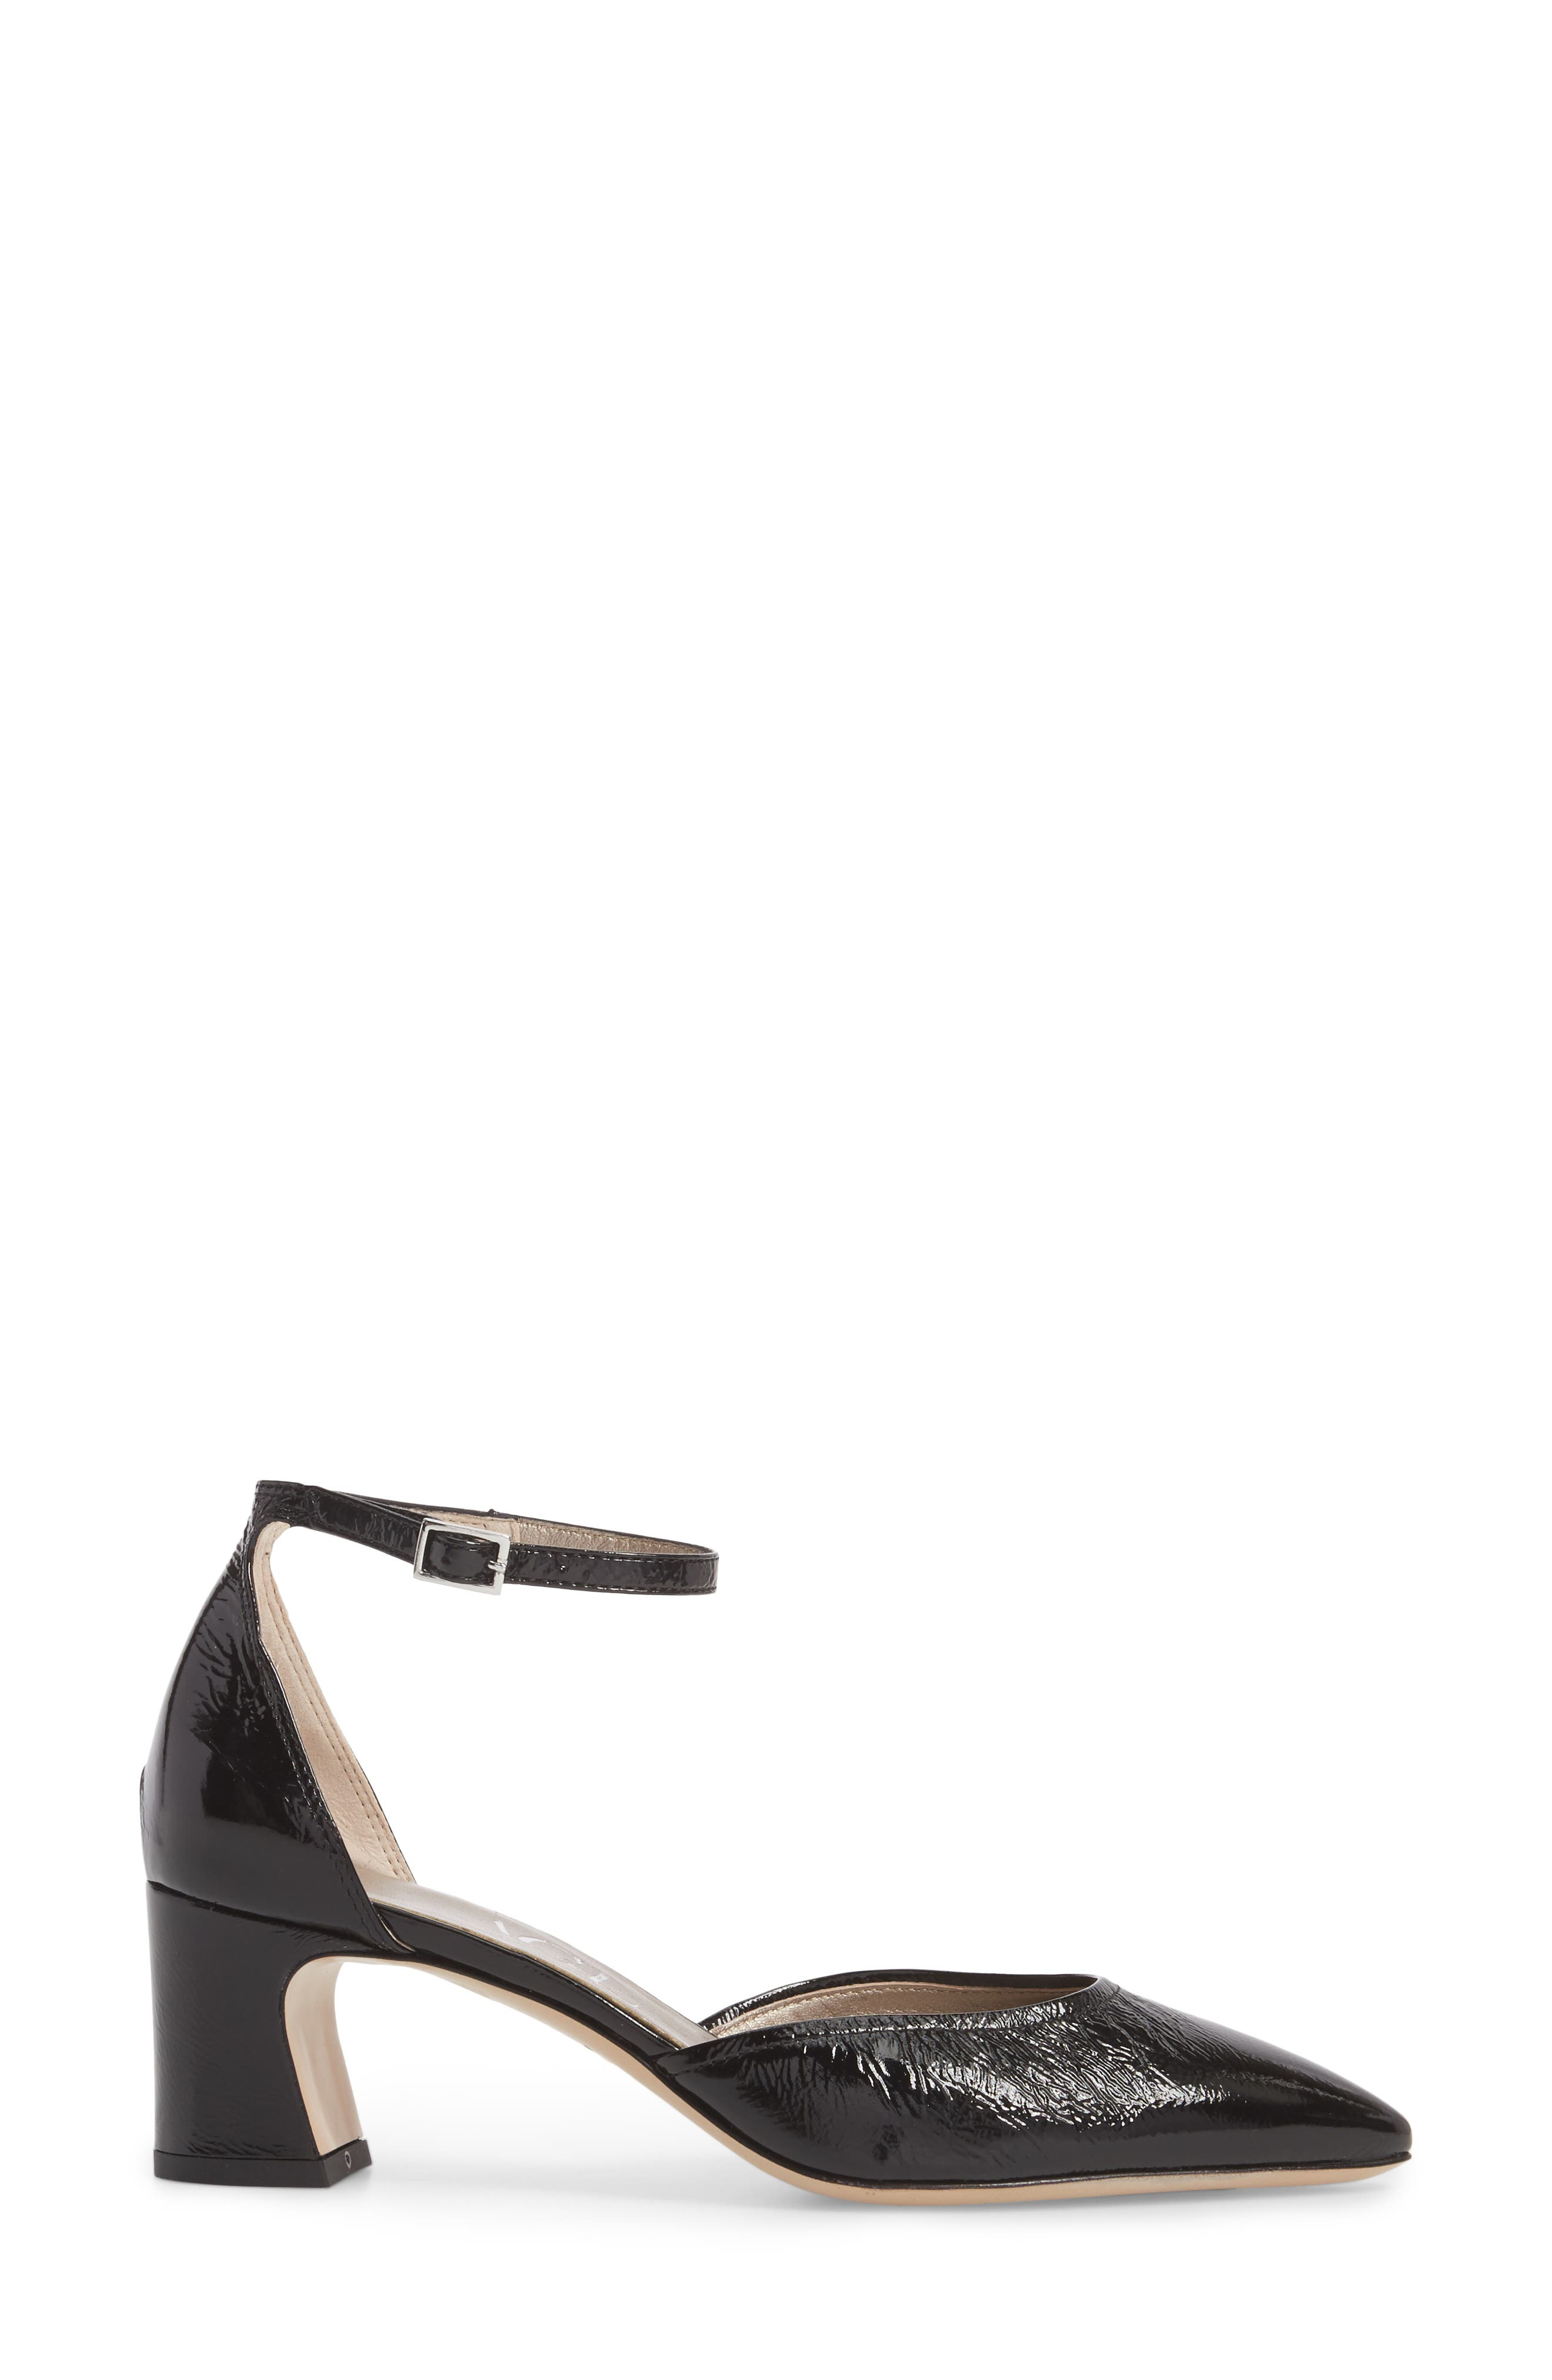 d'Orsay Ankle Strap Pump,                             Alternate thumbnail 3, color,                             BLACK GLAMMY LEATHER